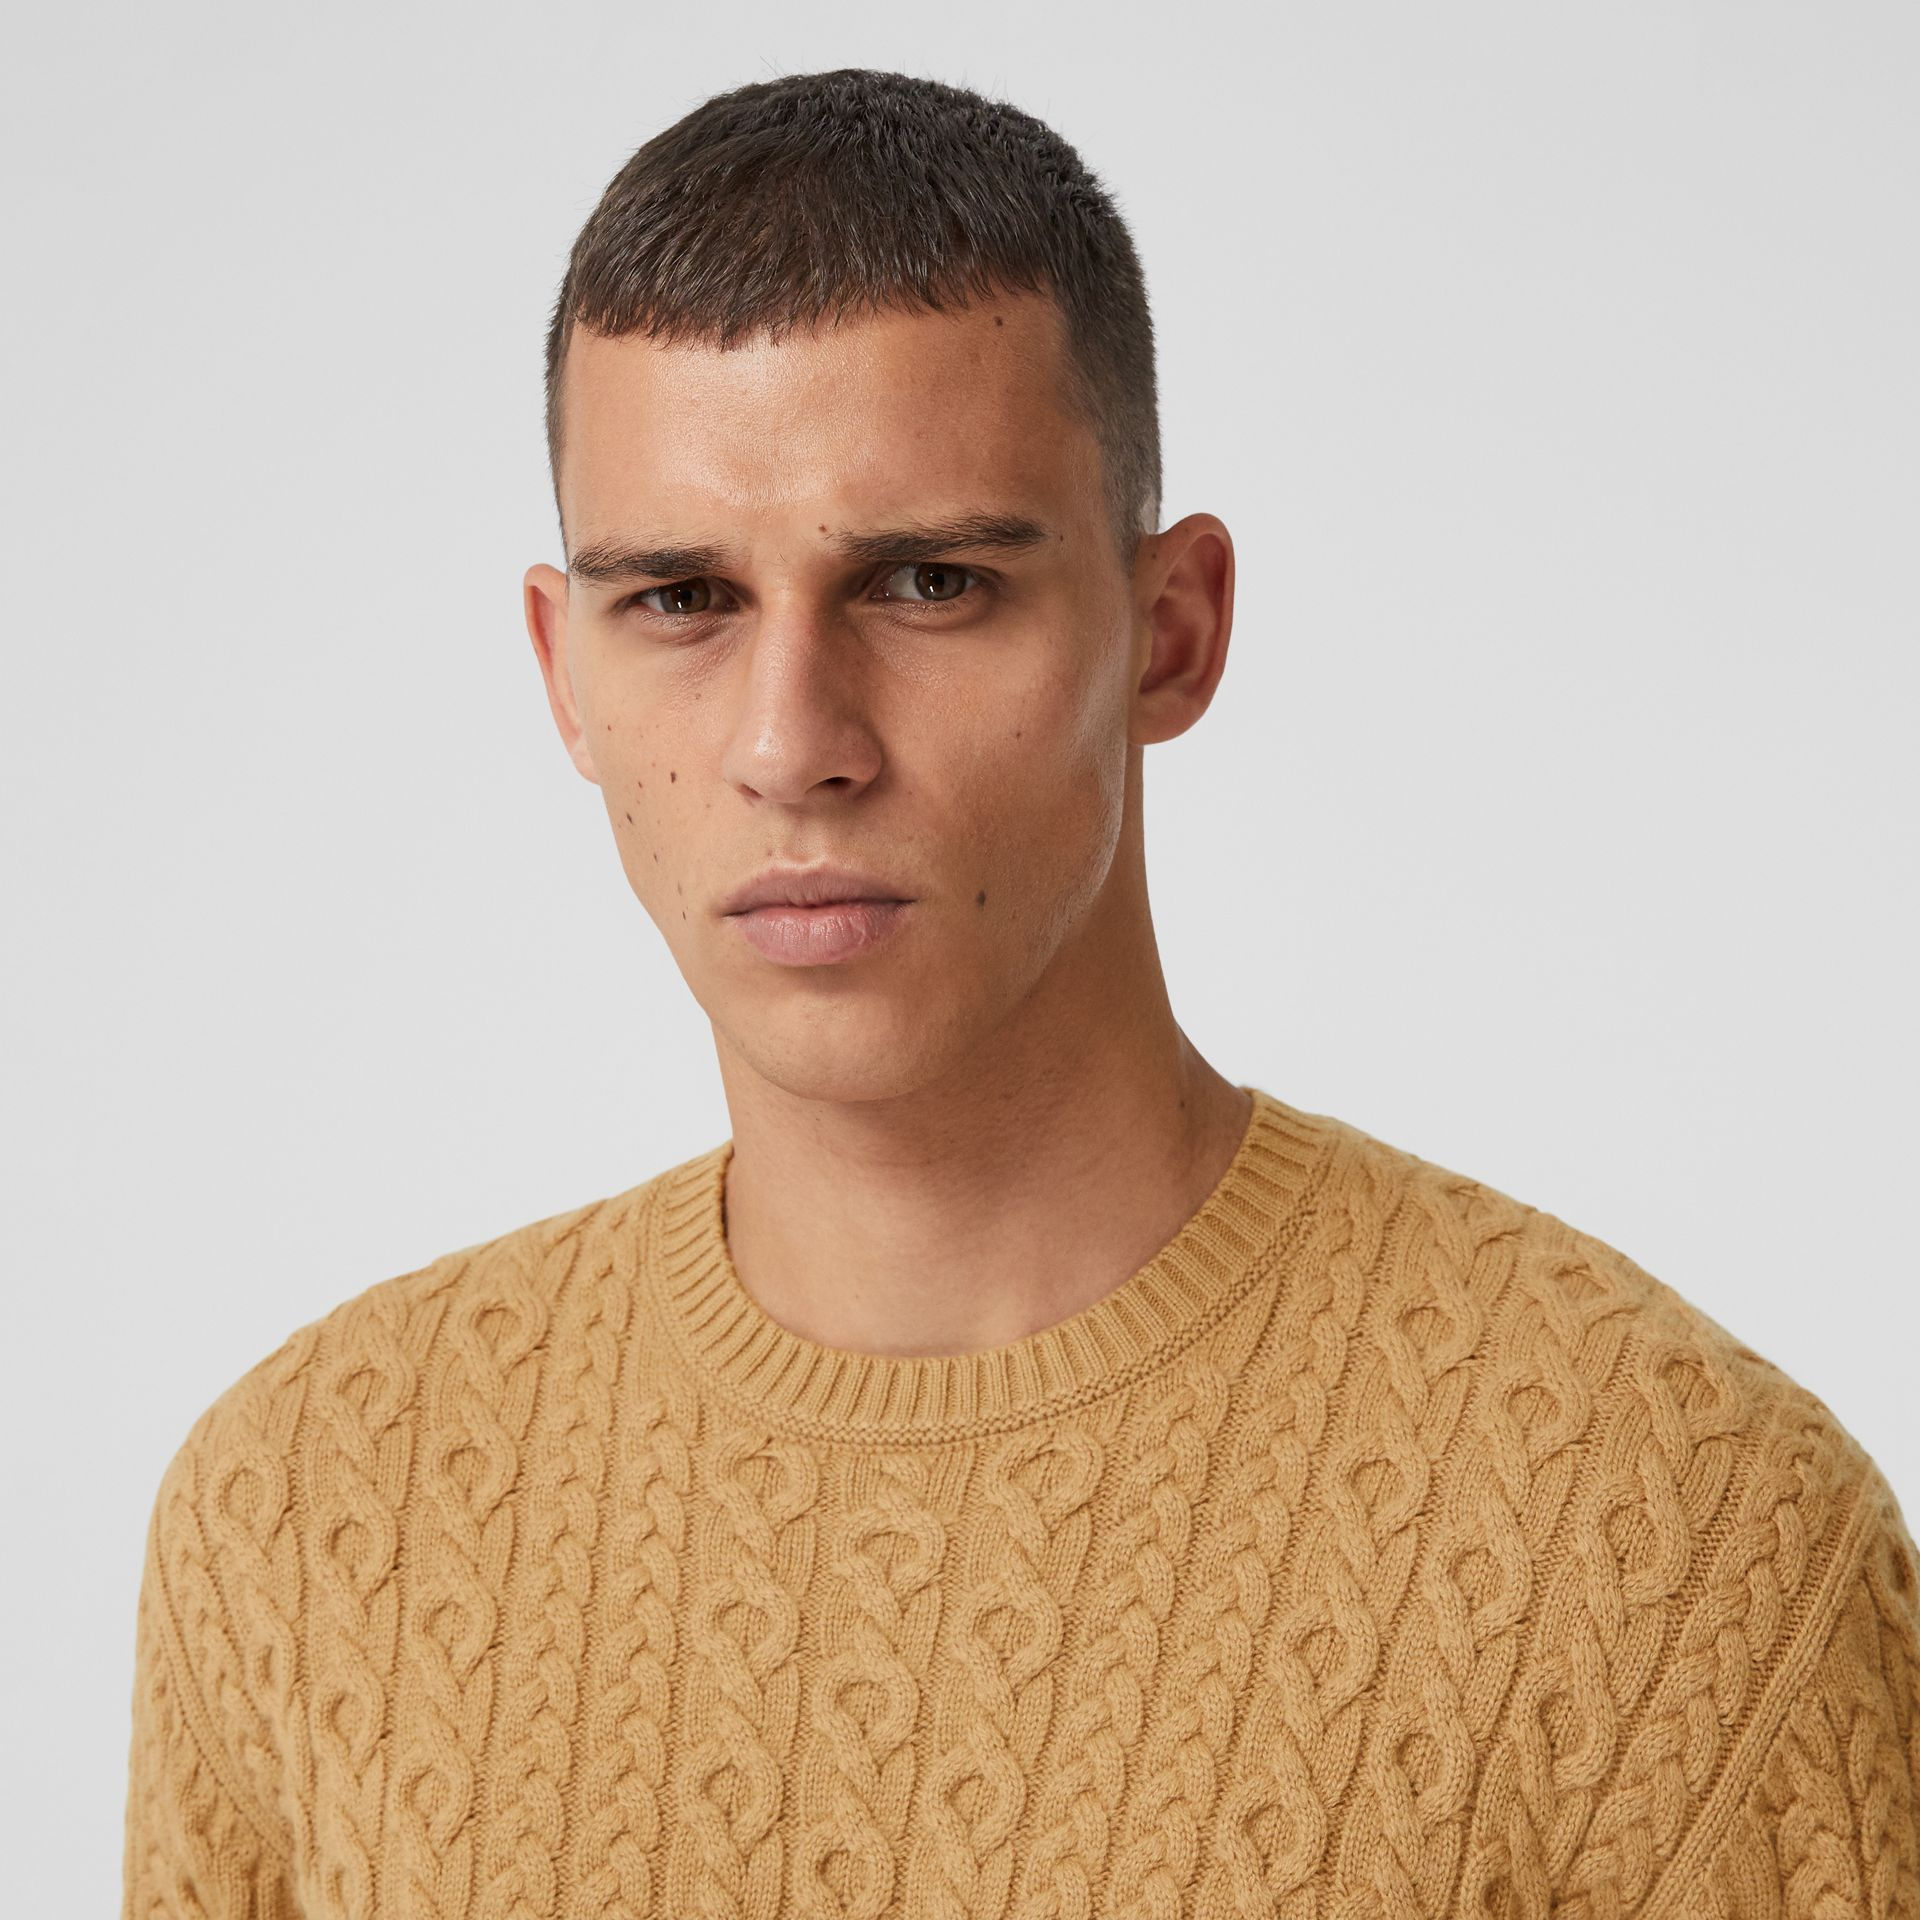 Cable Knit Wool Cashmere Sweater in Camel - Men | Burberry - gallery image 1